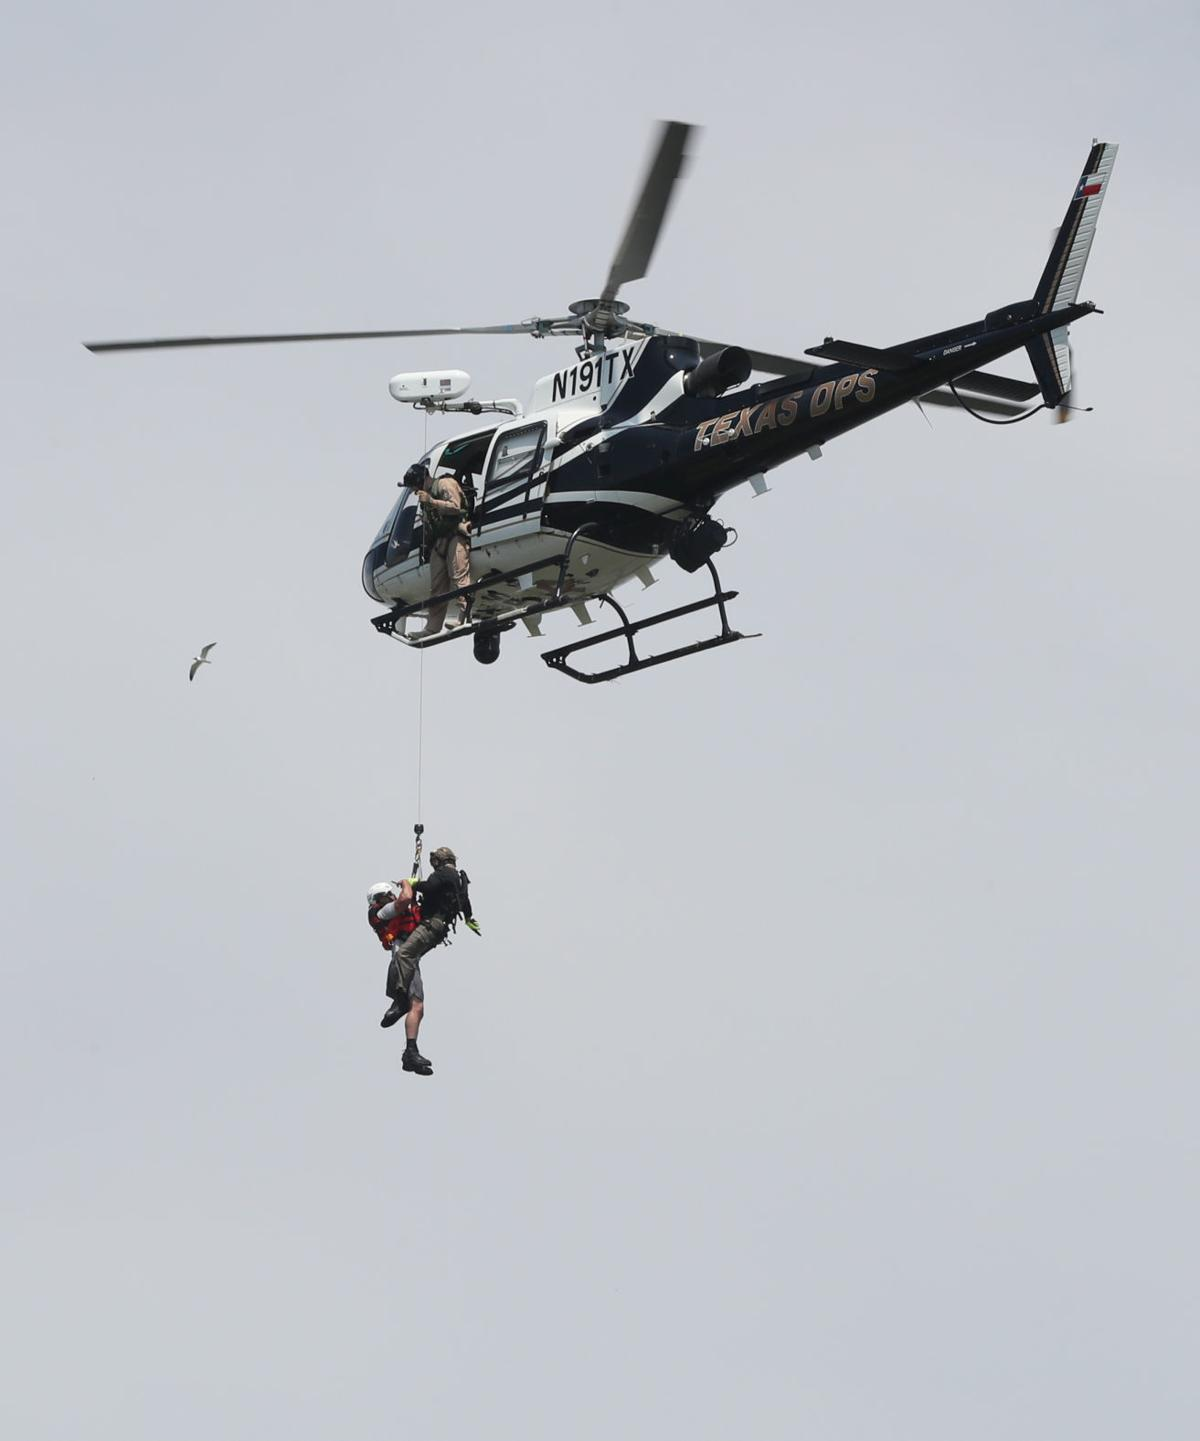 Helicopter search and rescue training